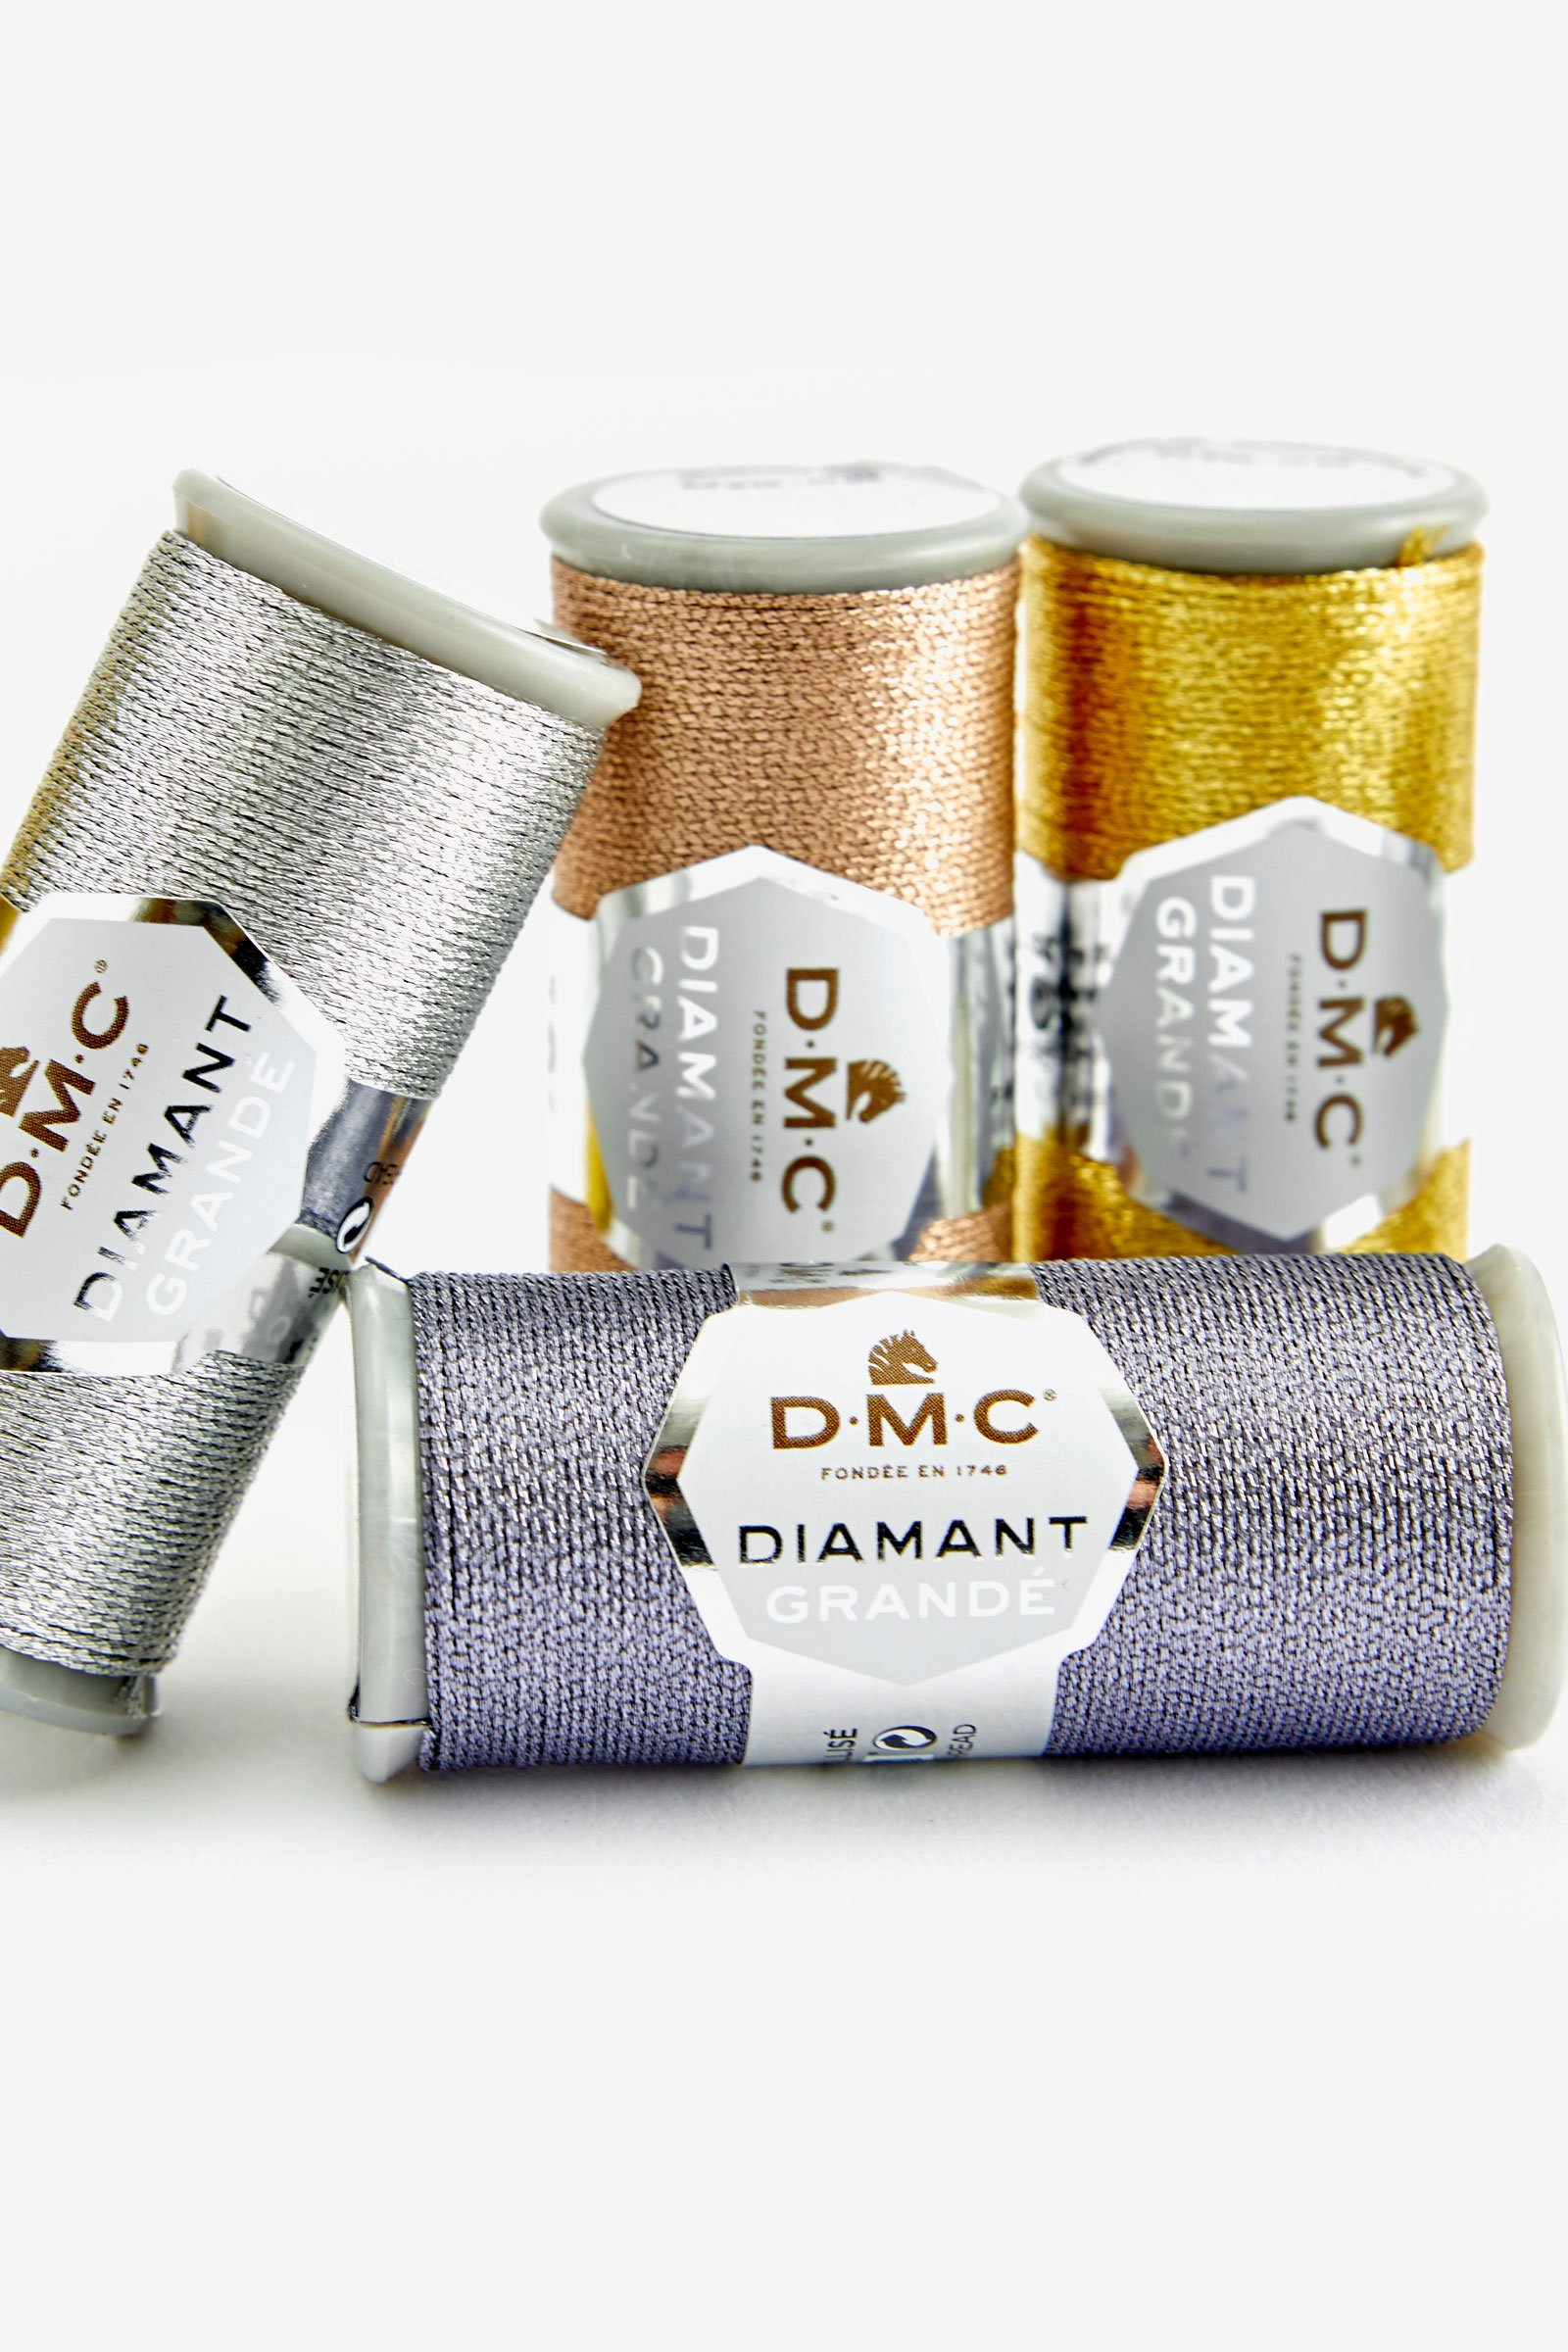 Diamant GRANDÉ Thread